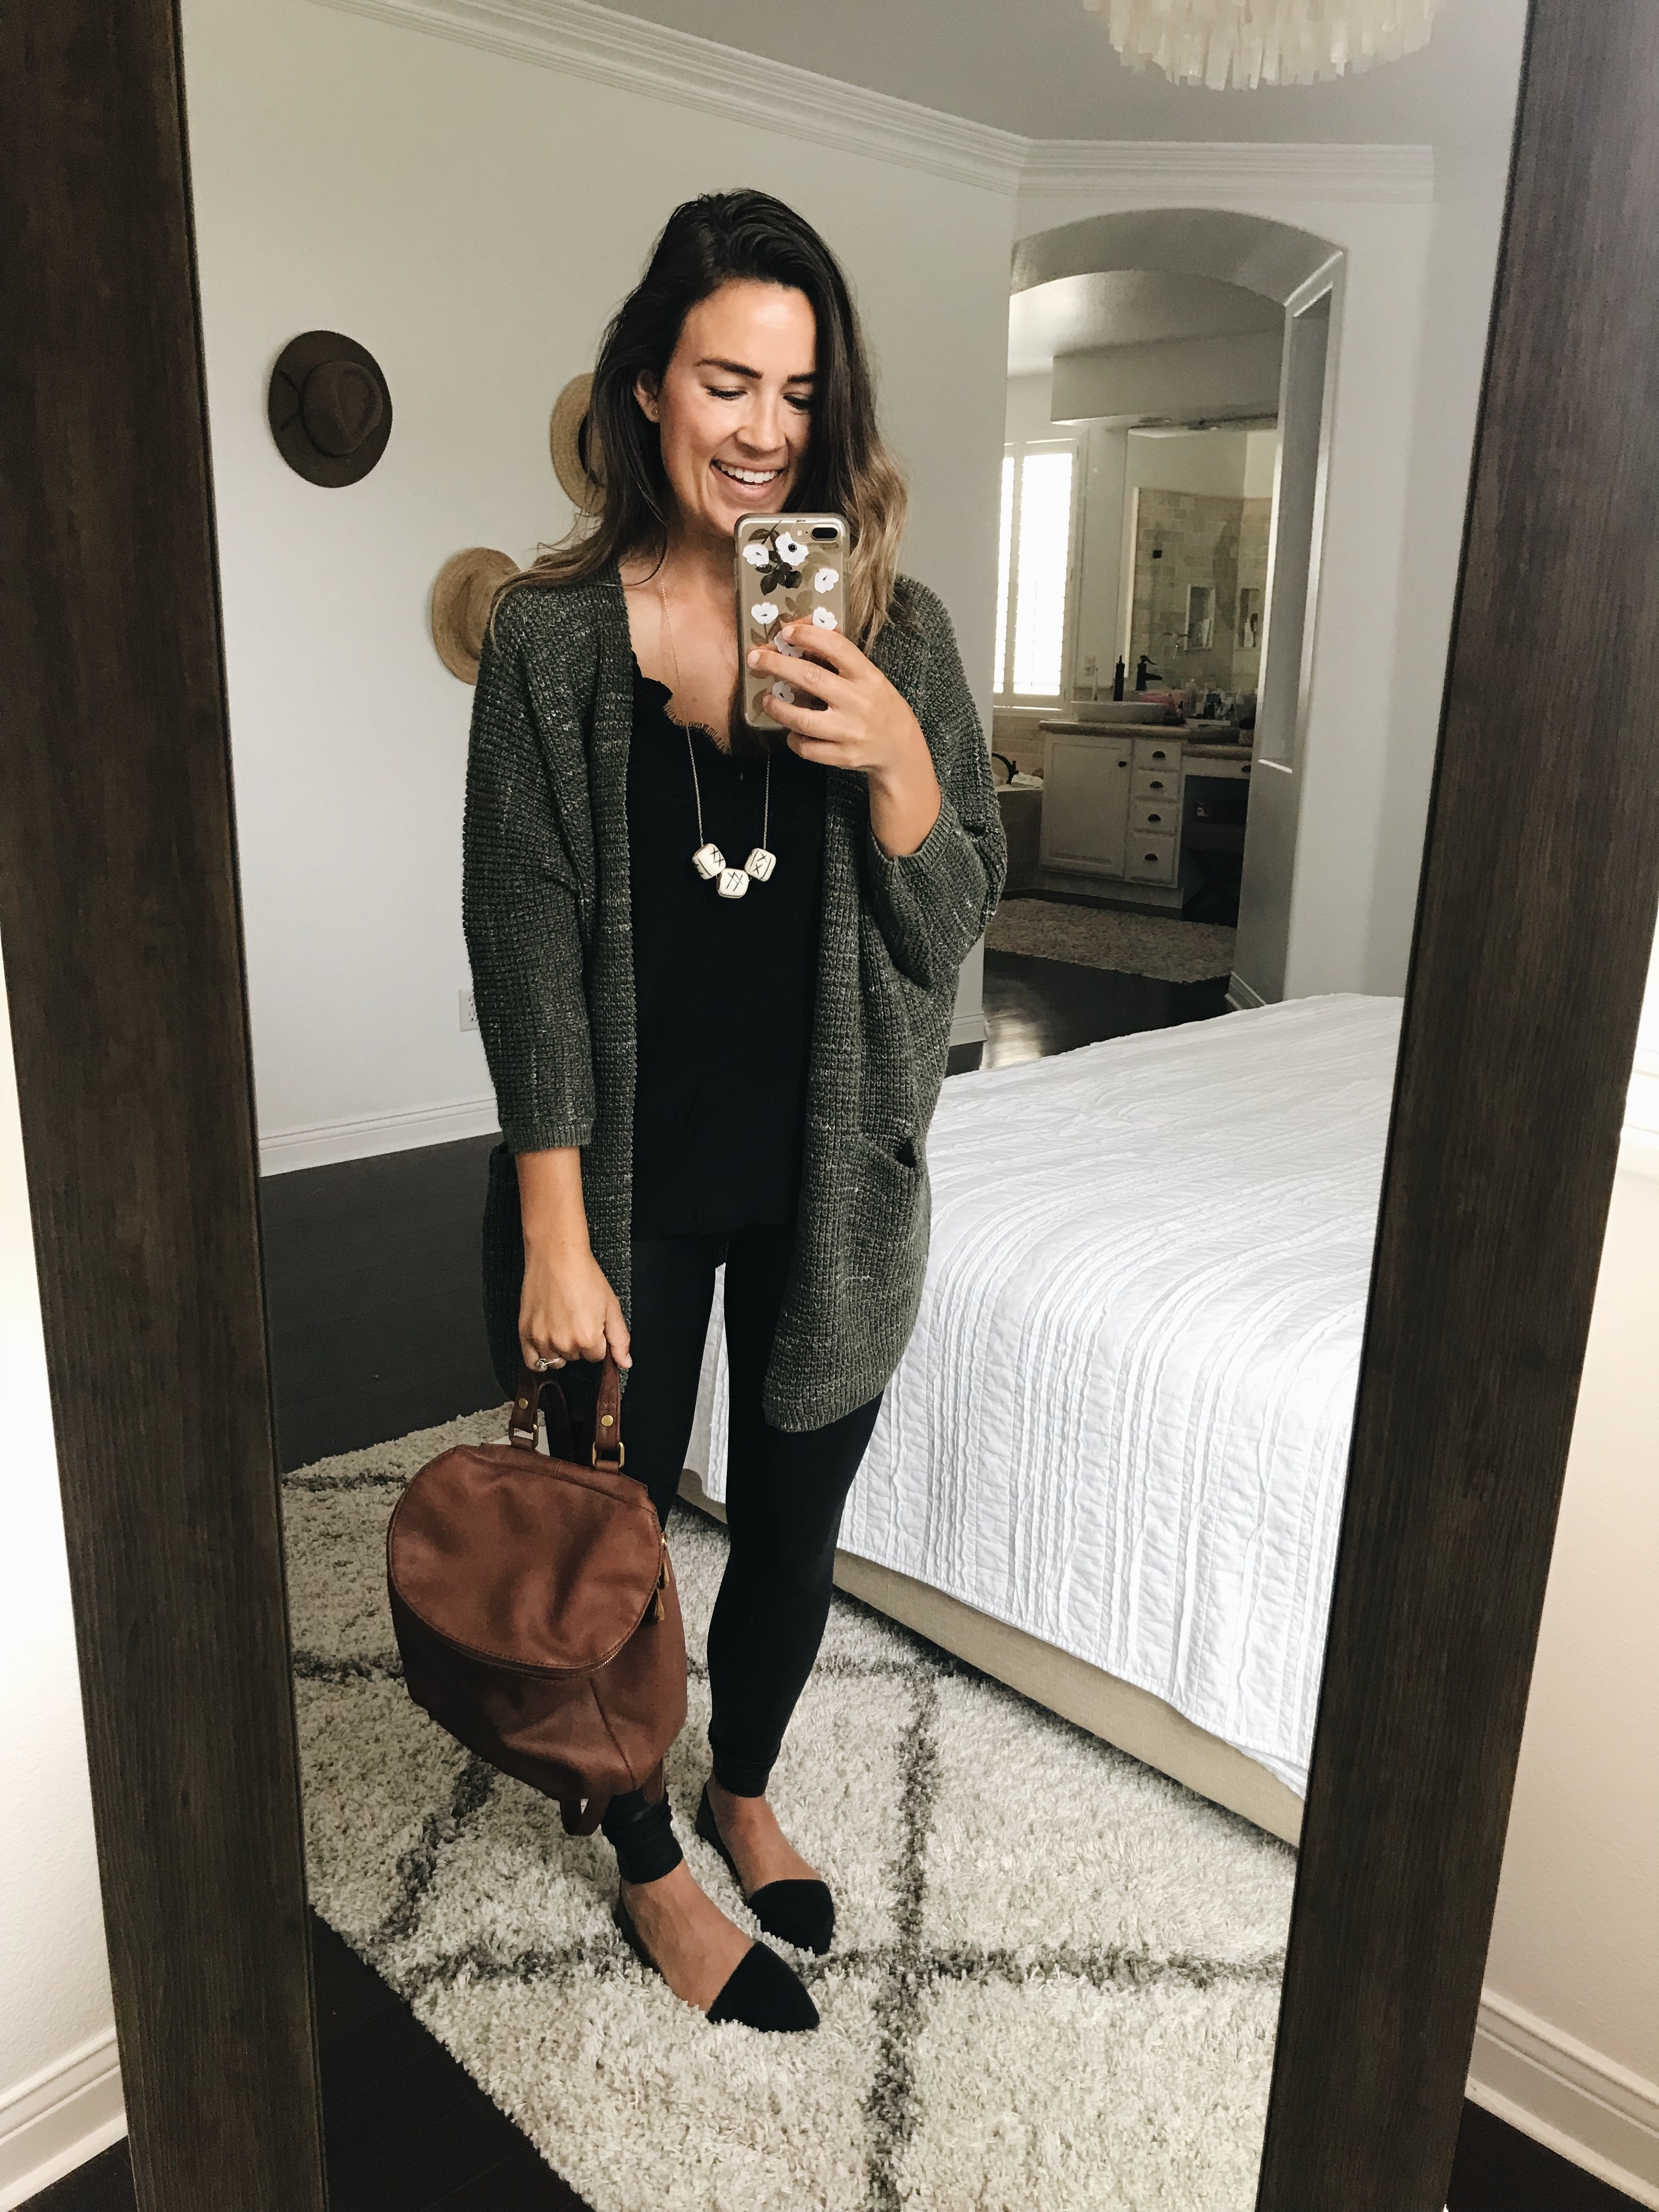 954f2fcdc214e Spanx leggings / Necklace / Lace cami / Olive cardigan (darker in person  than it appears online!) / Similar black flats / Backpack (c/o) / Stud  earrings